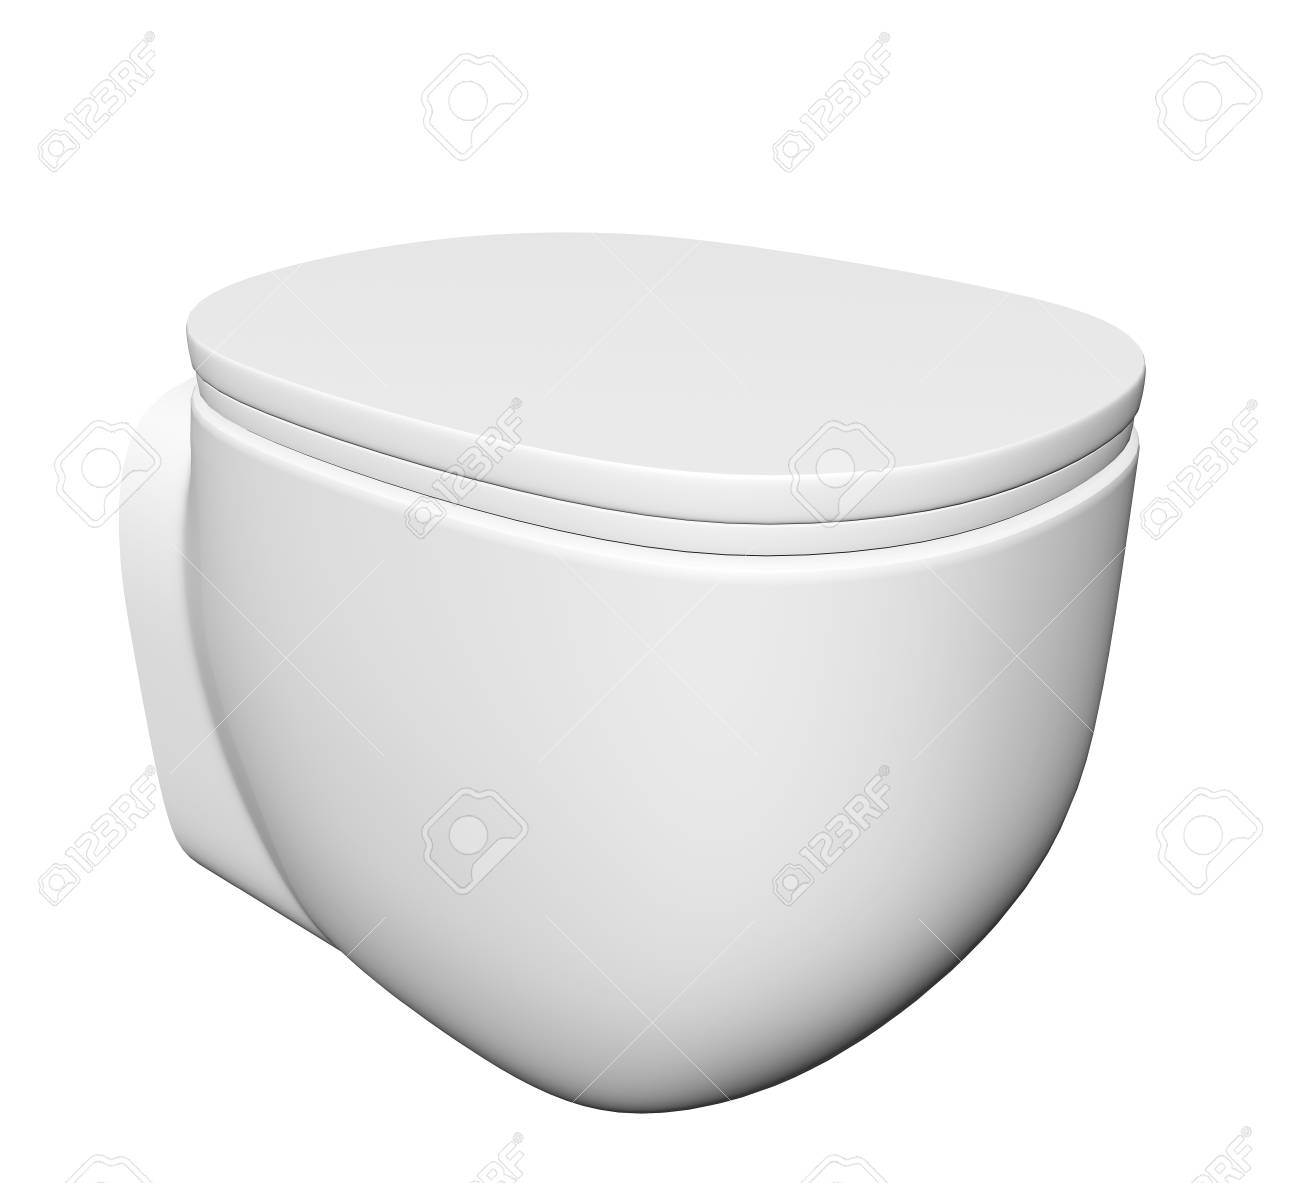 Modern white ceramic and acrylic toilet bowl and lid, isolated against a white background. 3D illustration Stock Illustration - 10698376